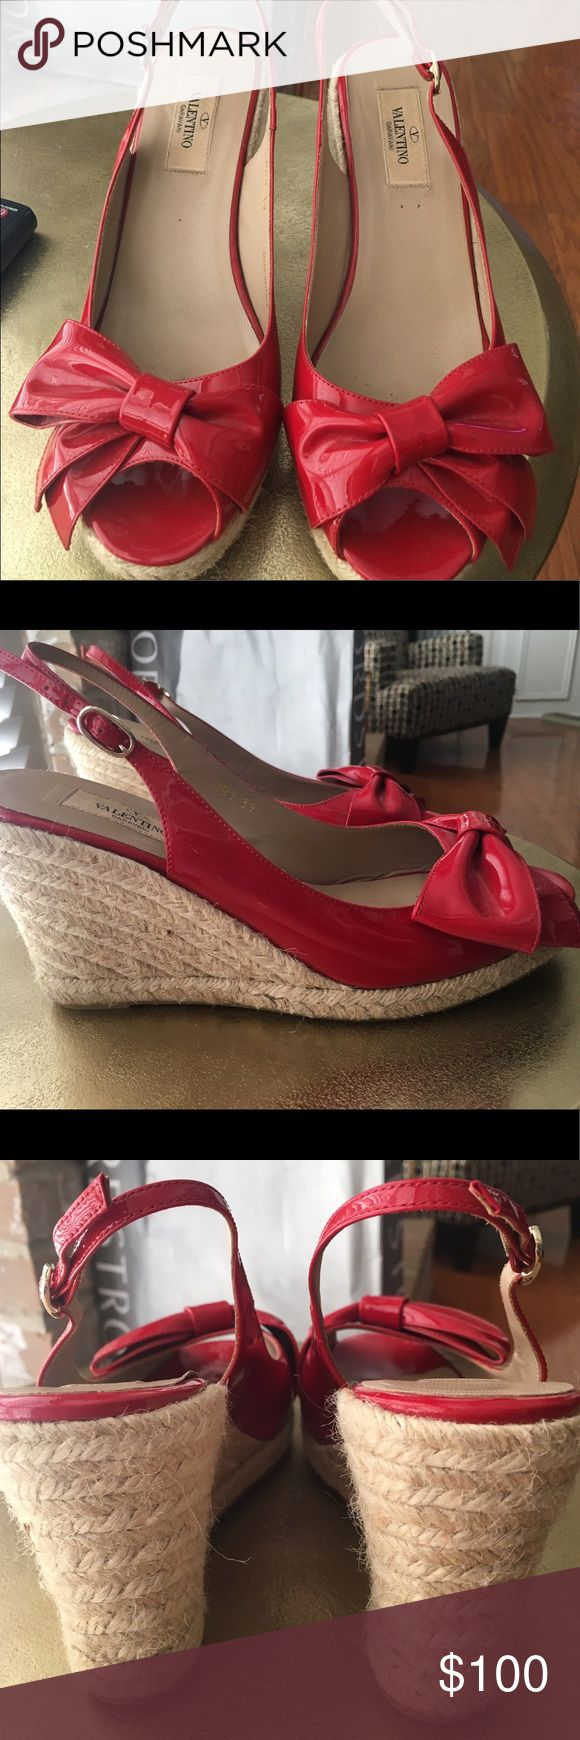 Red Valentino wedges Cute red Valentino wedges perfect for summer Valentino Shoes Wedges